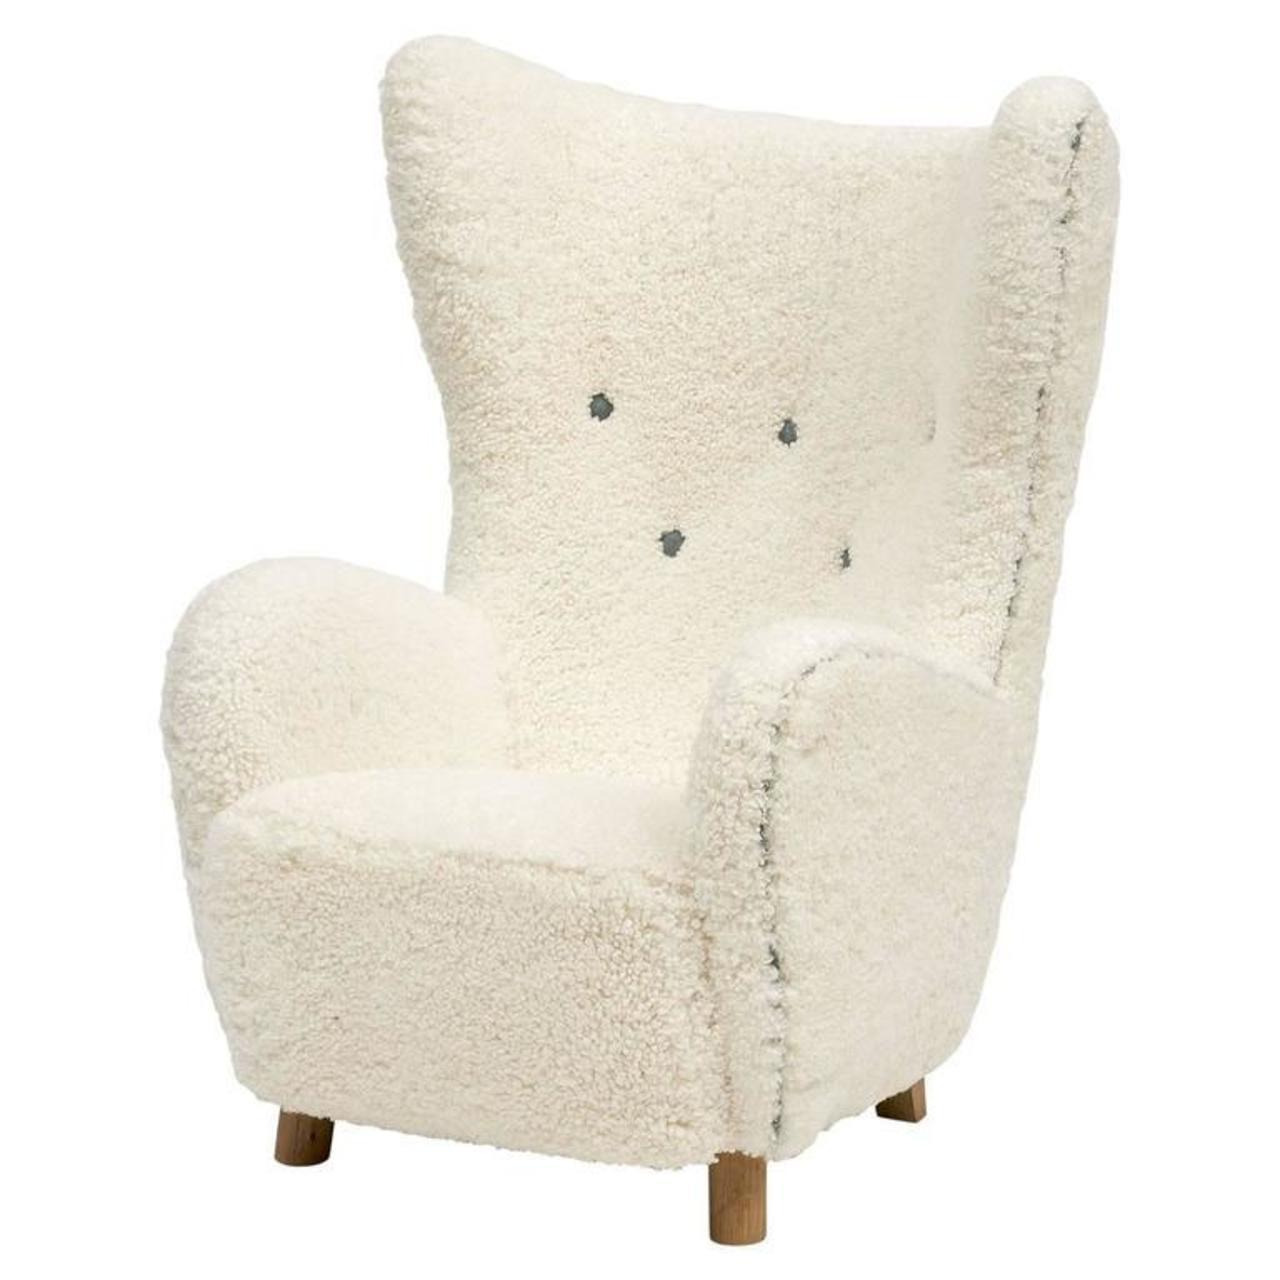 Exceptionnel Mogens Lassen Wingback Lounge Chair In Sheepskin, Denmark, 1930s   Image 11  Of 11